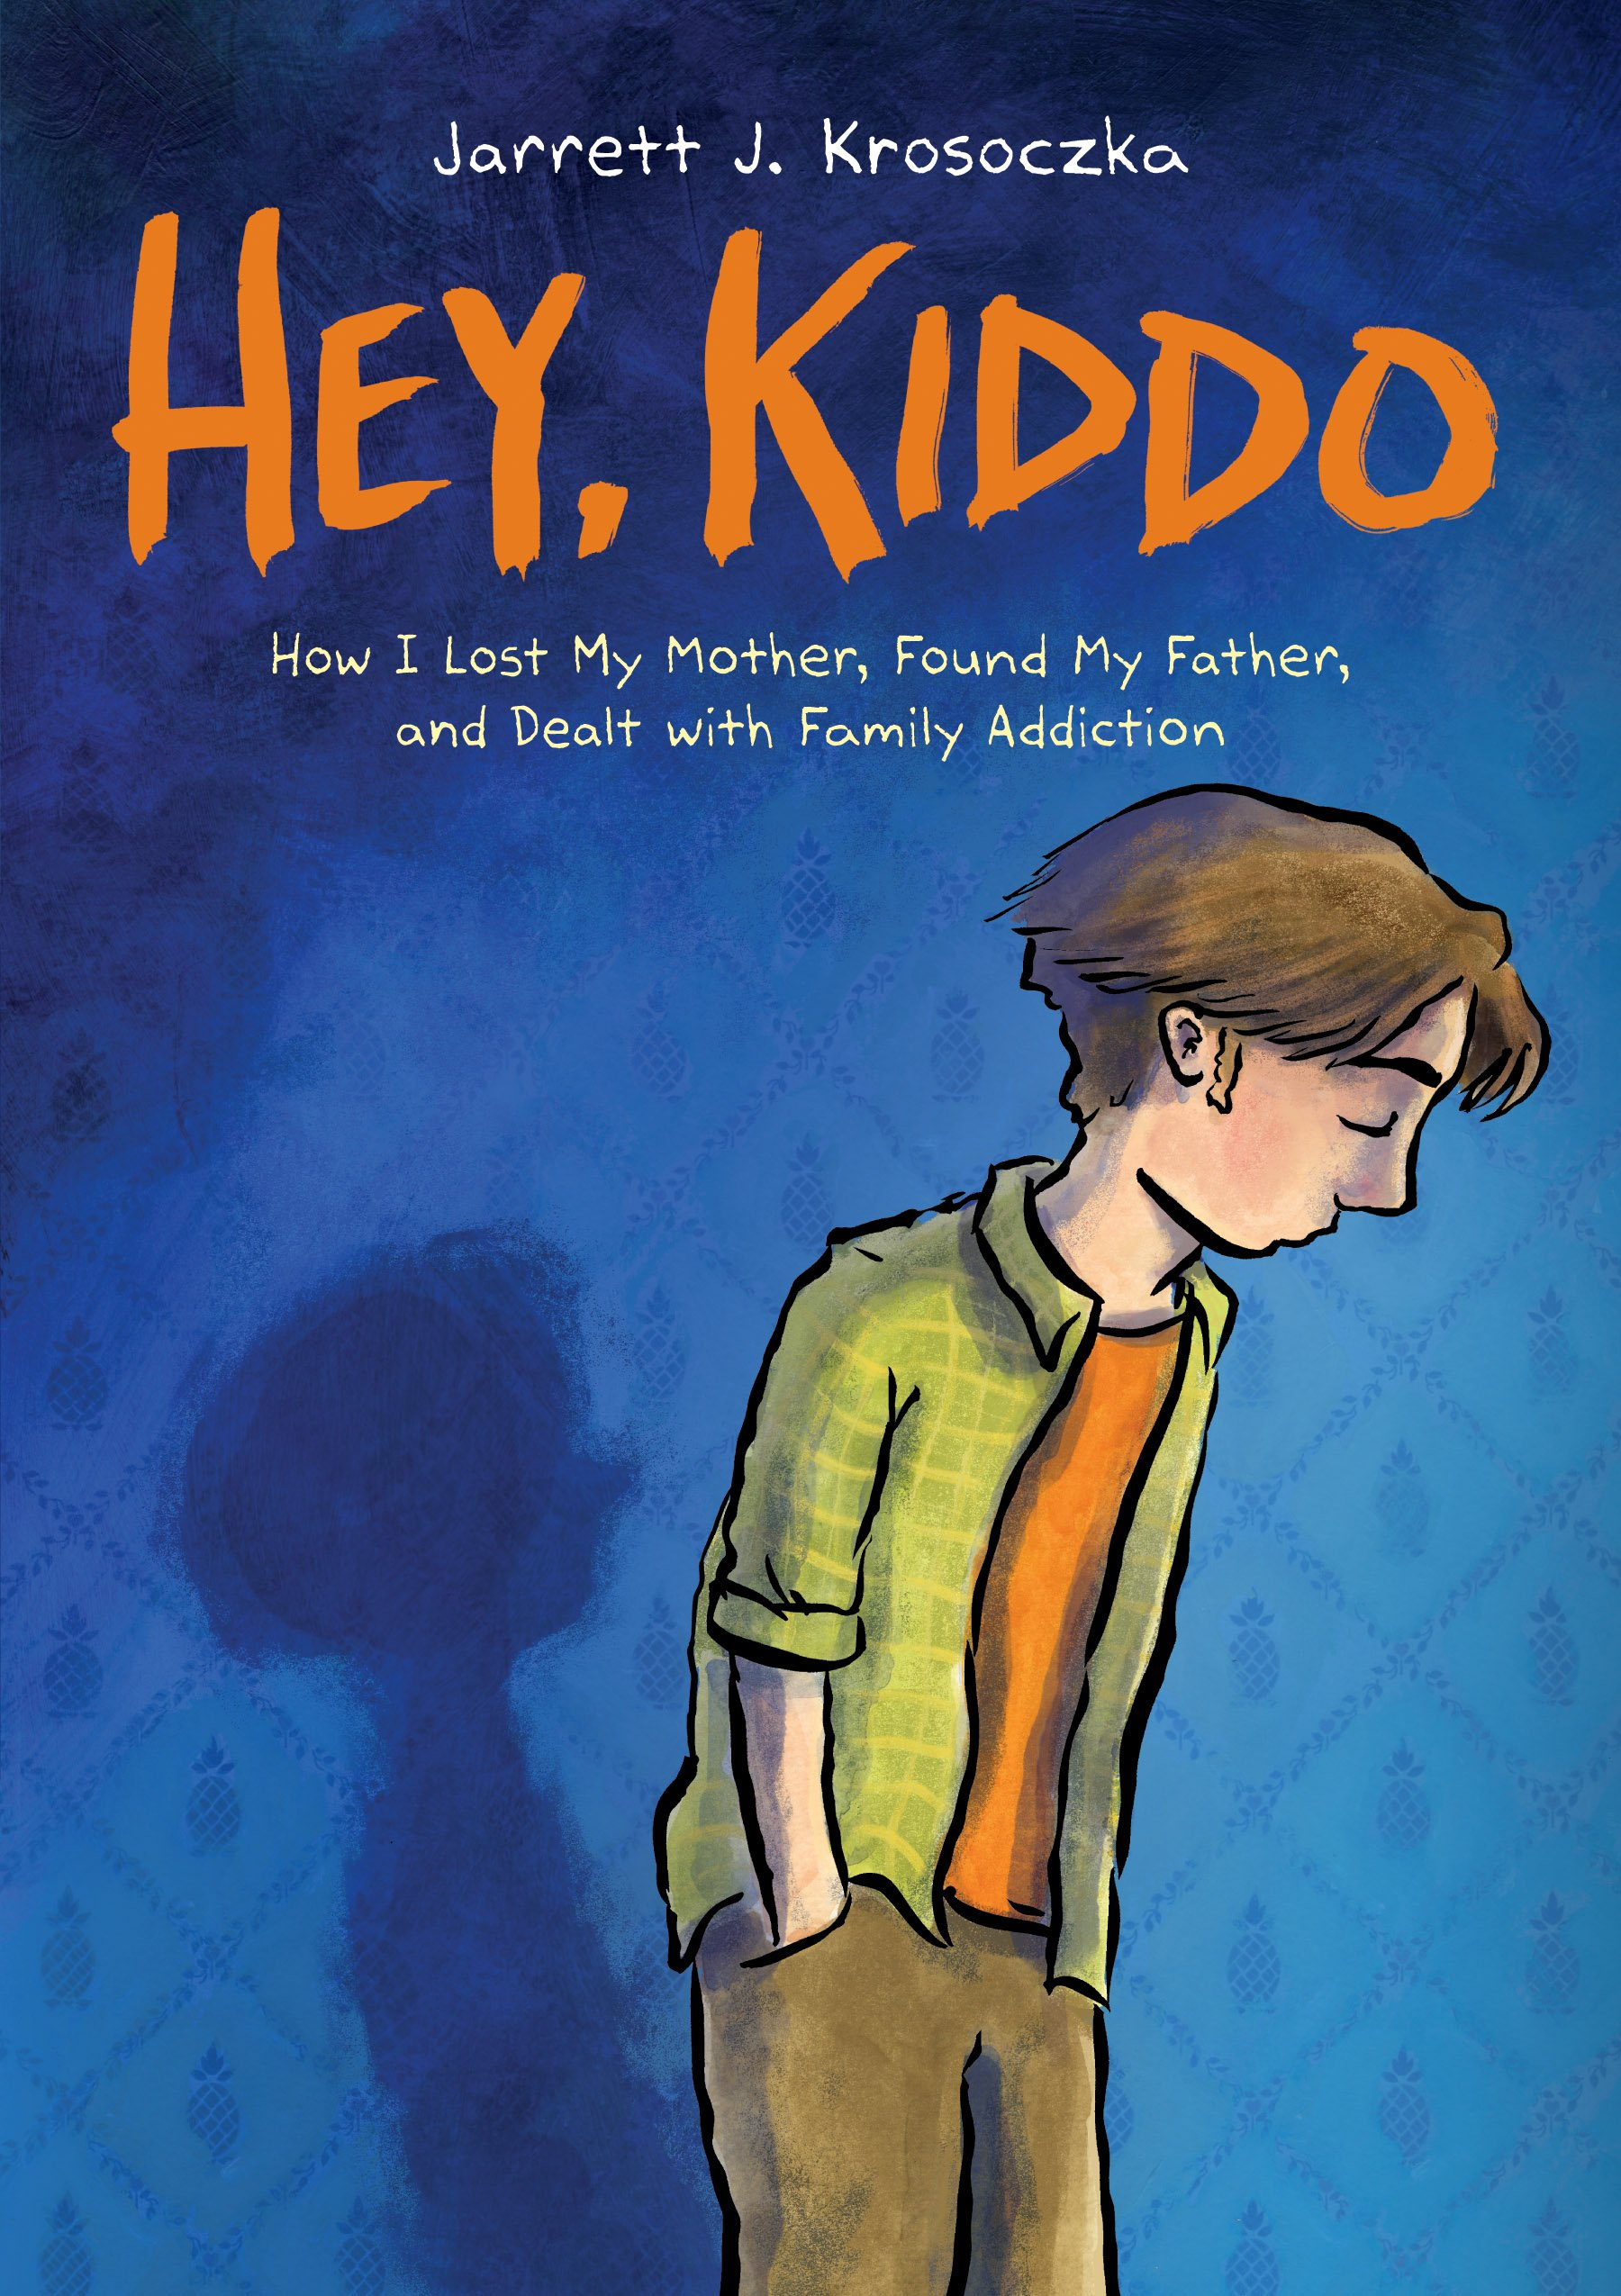 Image result for hey kiddo book